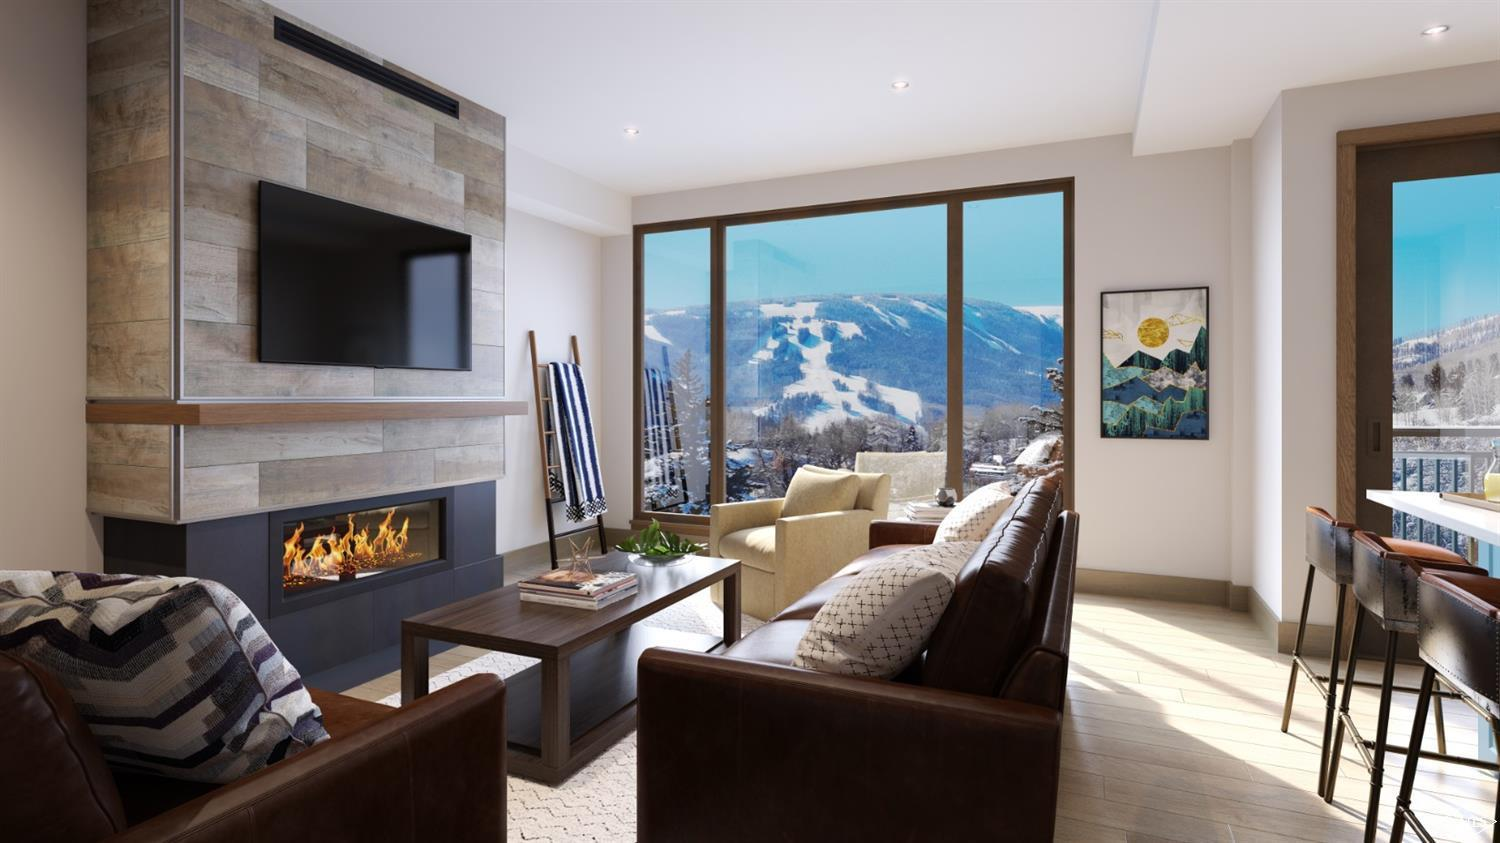 Brand-new. Construction is being wrapped up now to be able to enjoy this winter. This penthouse level residence offers vaulted ceilings, an open floor plan, timeless modern finishes and access to all amenities at the neighboring Westin. Located on the Eagle River bike path with easy access to skiing via Riverfront Gondola makes this location a vacationer's dream. Enjoy a generous primary bedroom with vaulted ceilings, its own balcony and a luxurious 5-piece bathroom. Riverfront Lodge will have its own front desk for easy owner and guest use, along with a lounge room, oversized hot tub, firepit and underground parking garage.